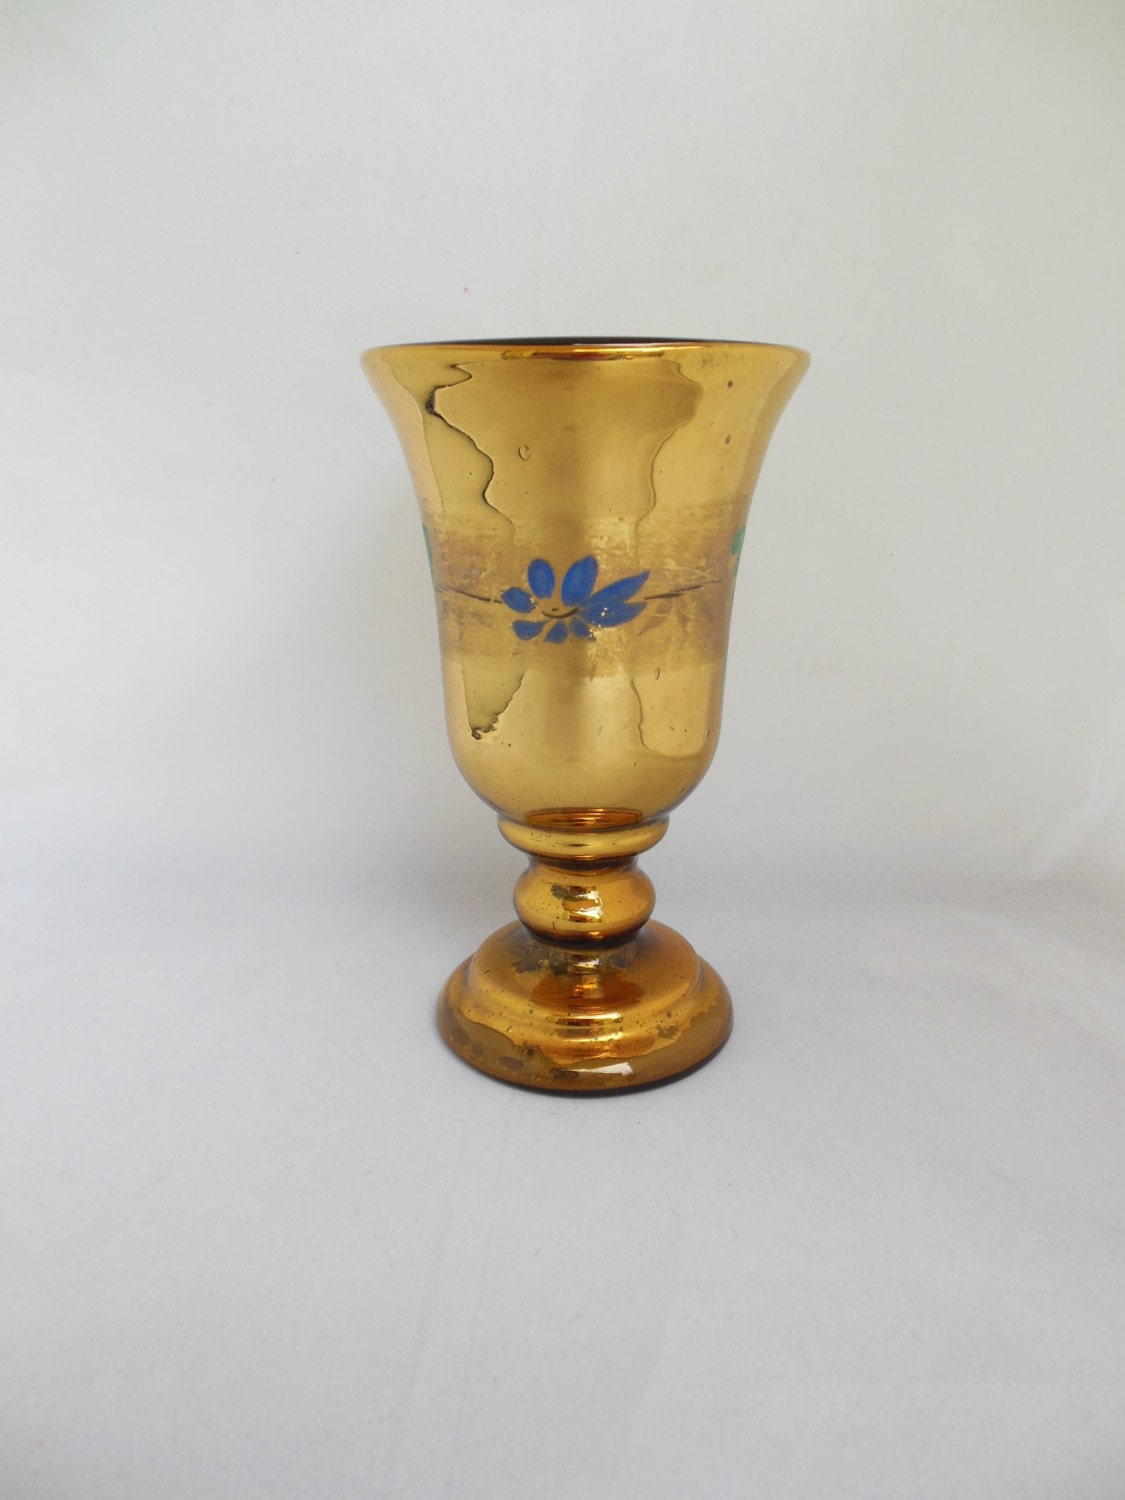 Antique Gold Mercury Glass Vase Or Goblet With Blue Flowers